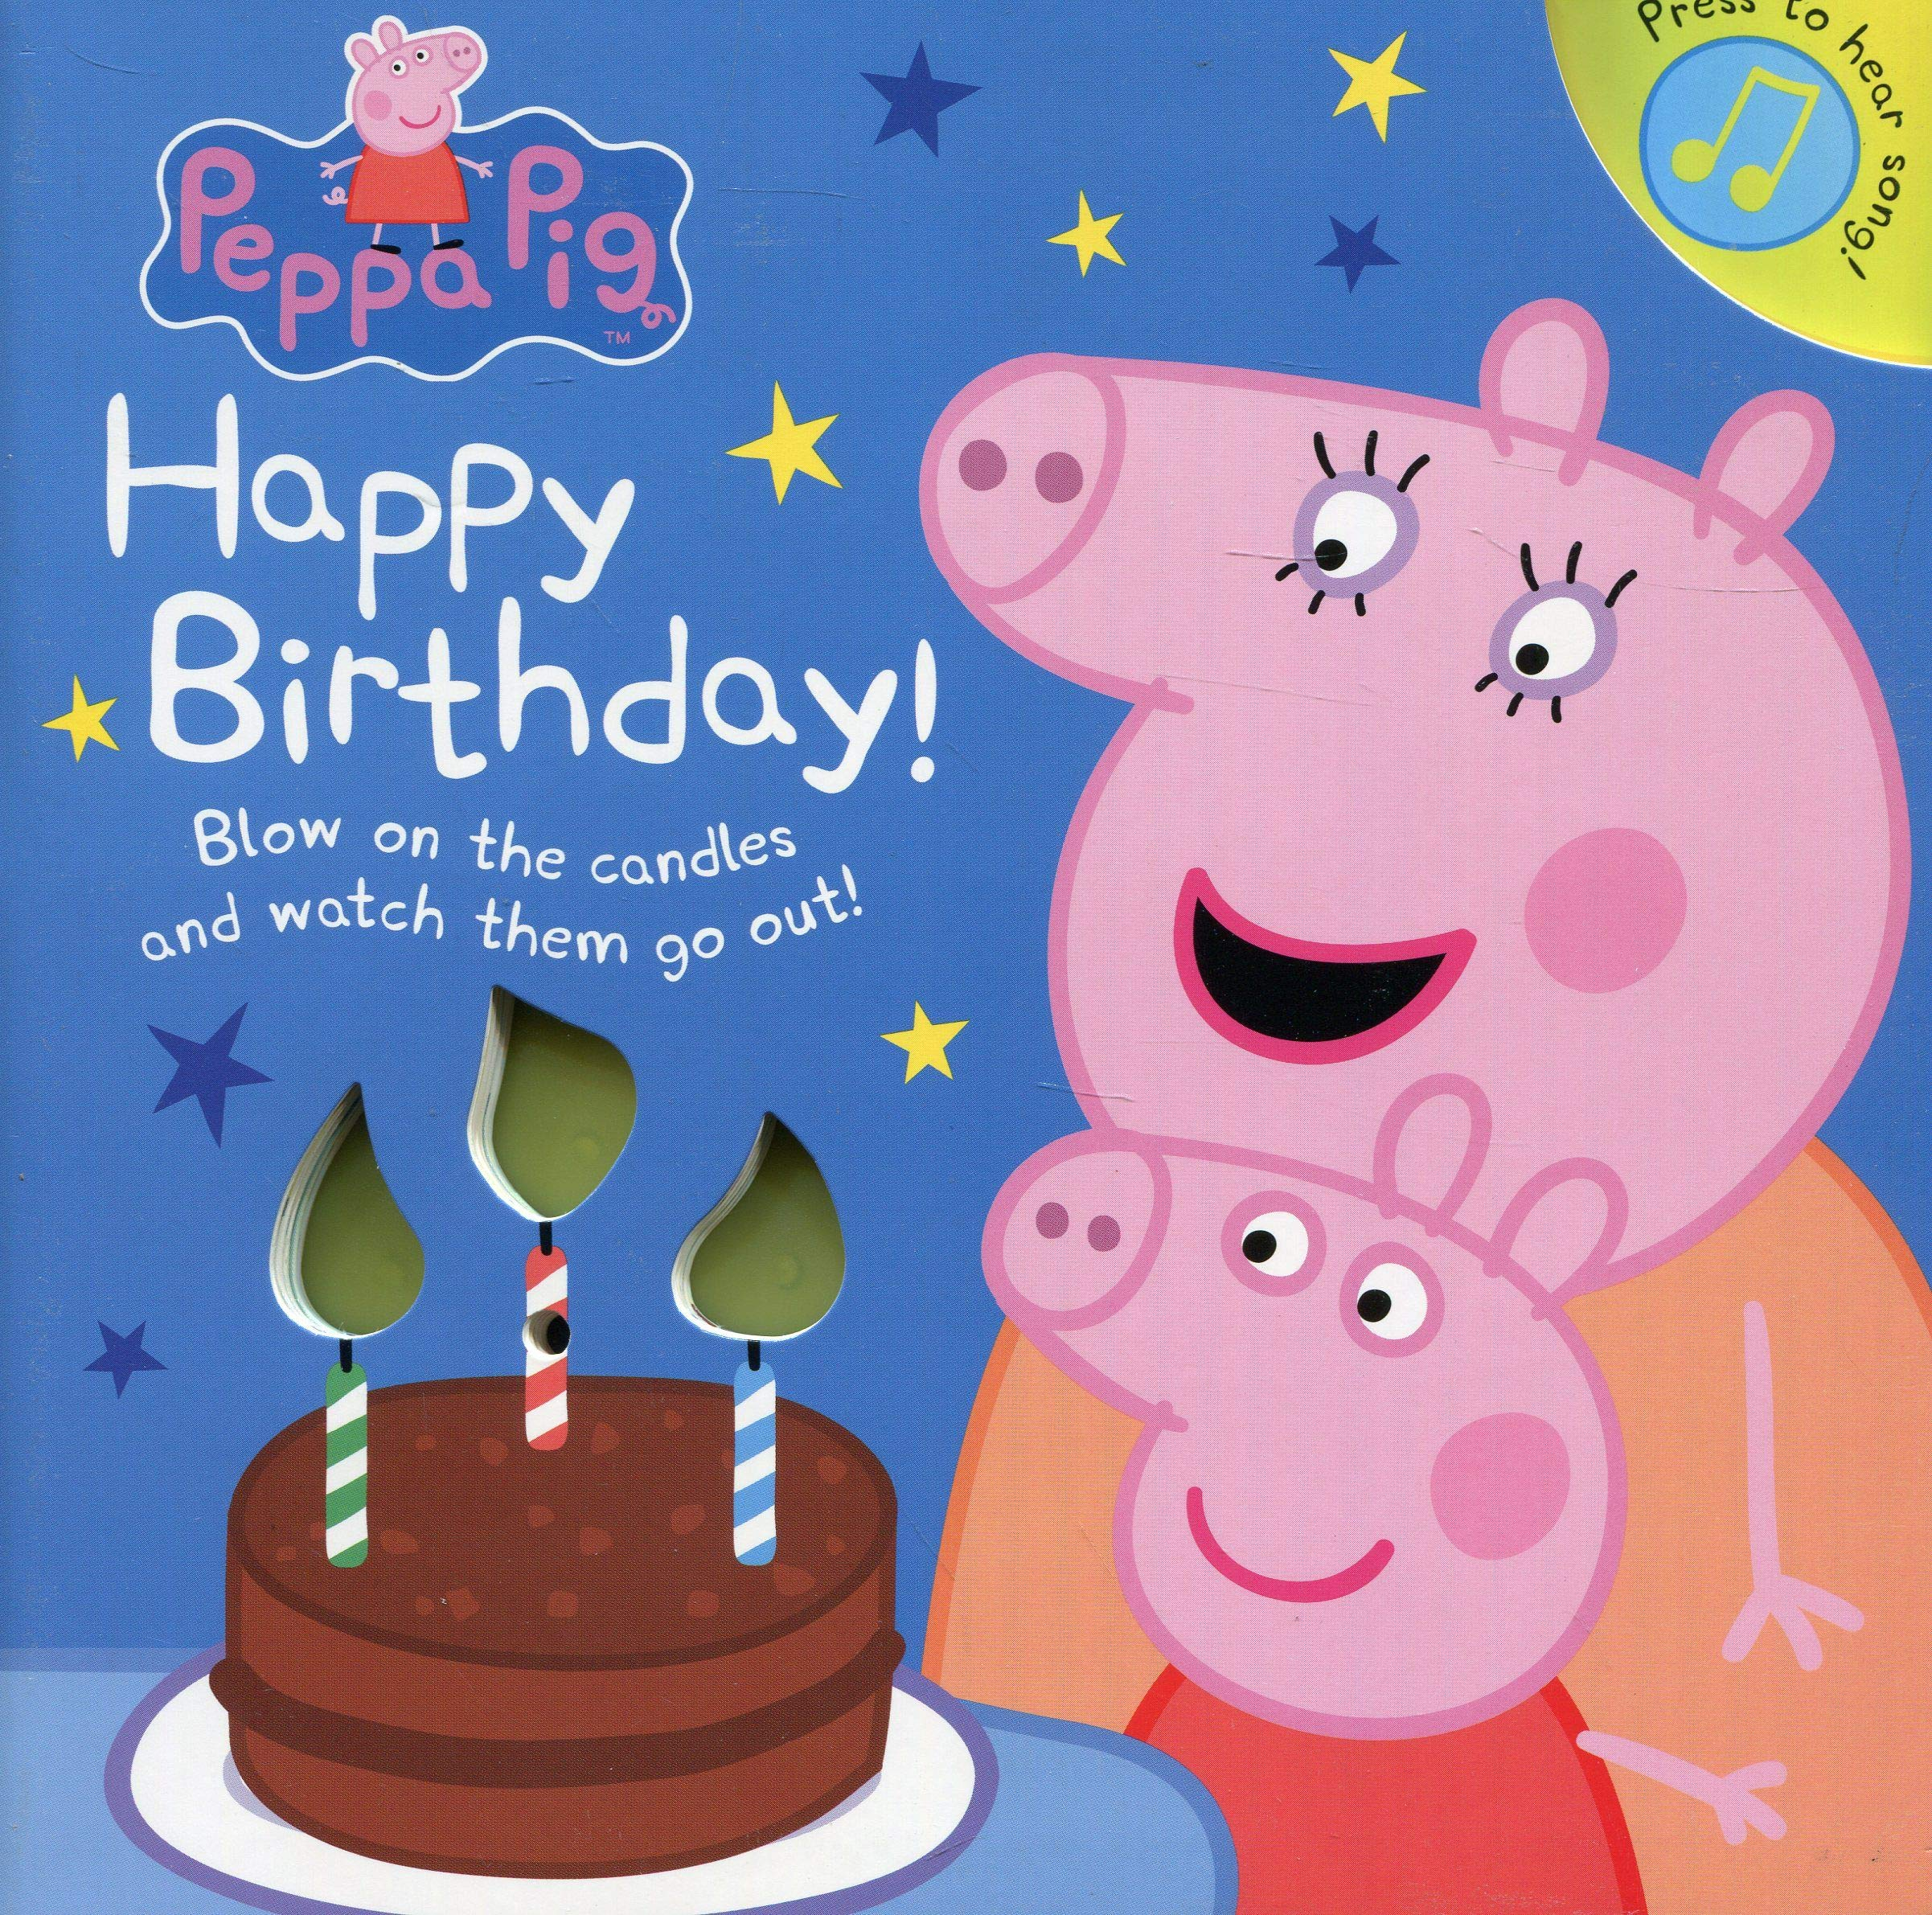 Peppa Pig Happy Birthday Amazon Co Uk Peppa Pig 9780241309049